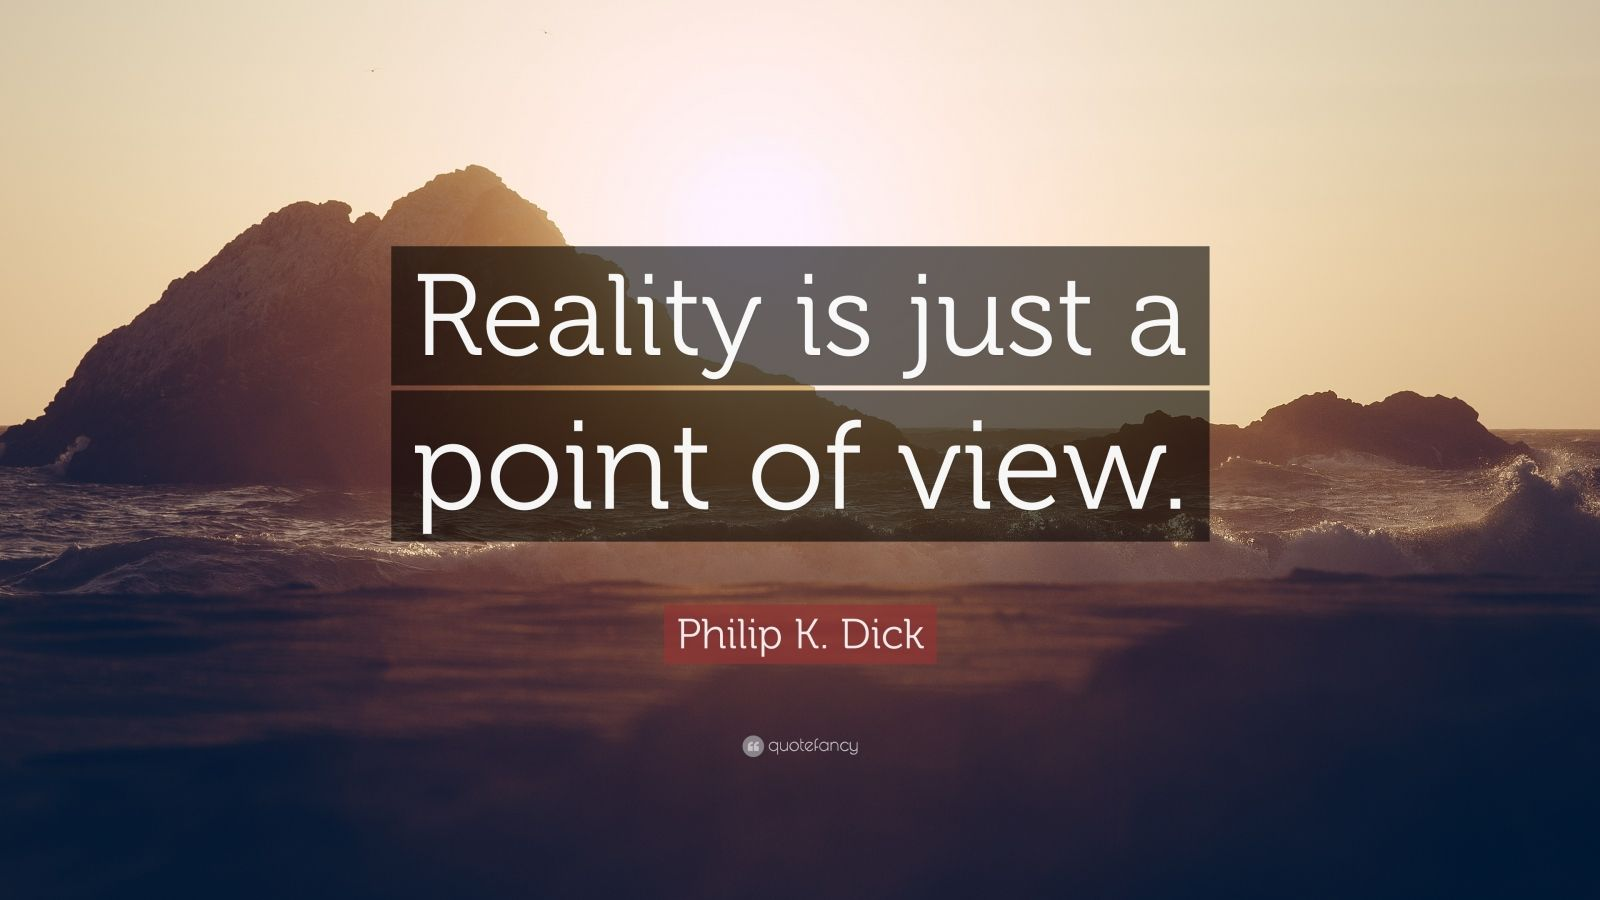 Philip k dick reality book fuck book